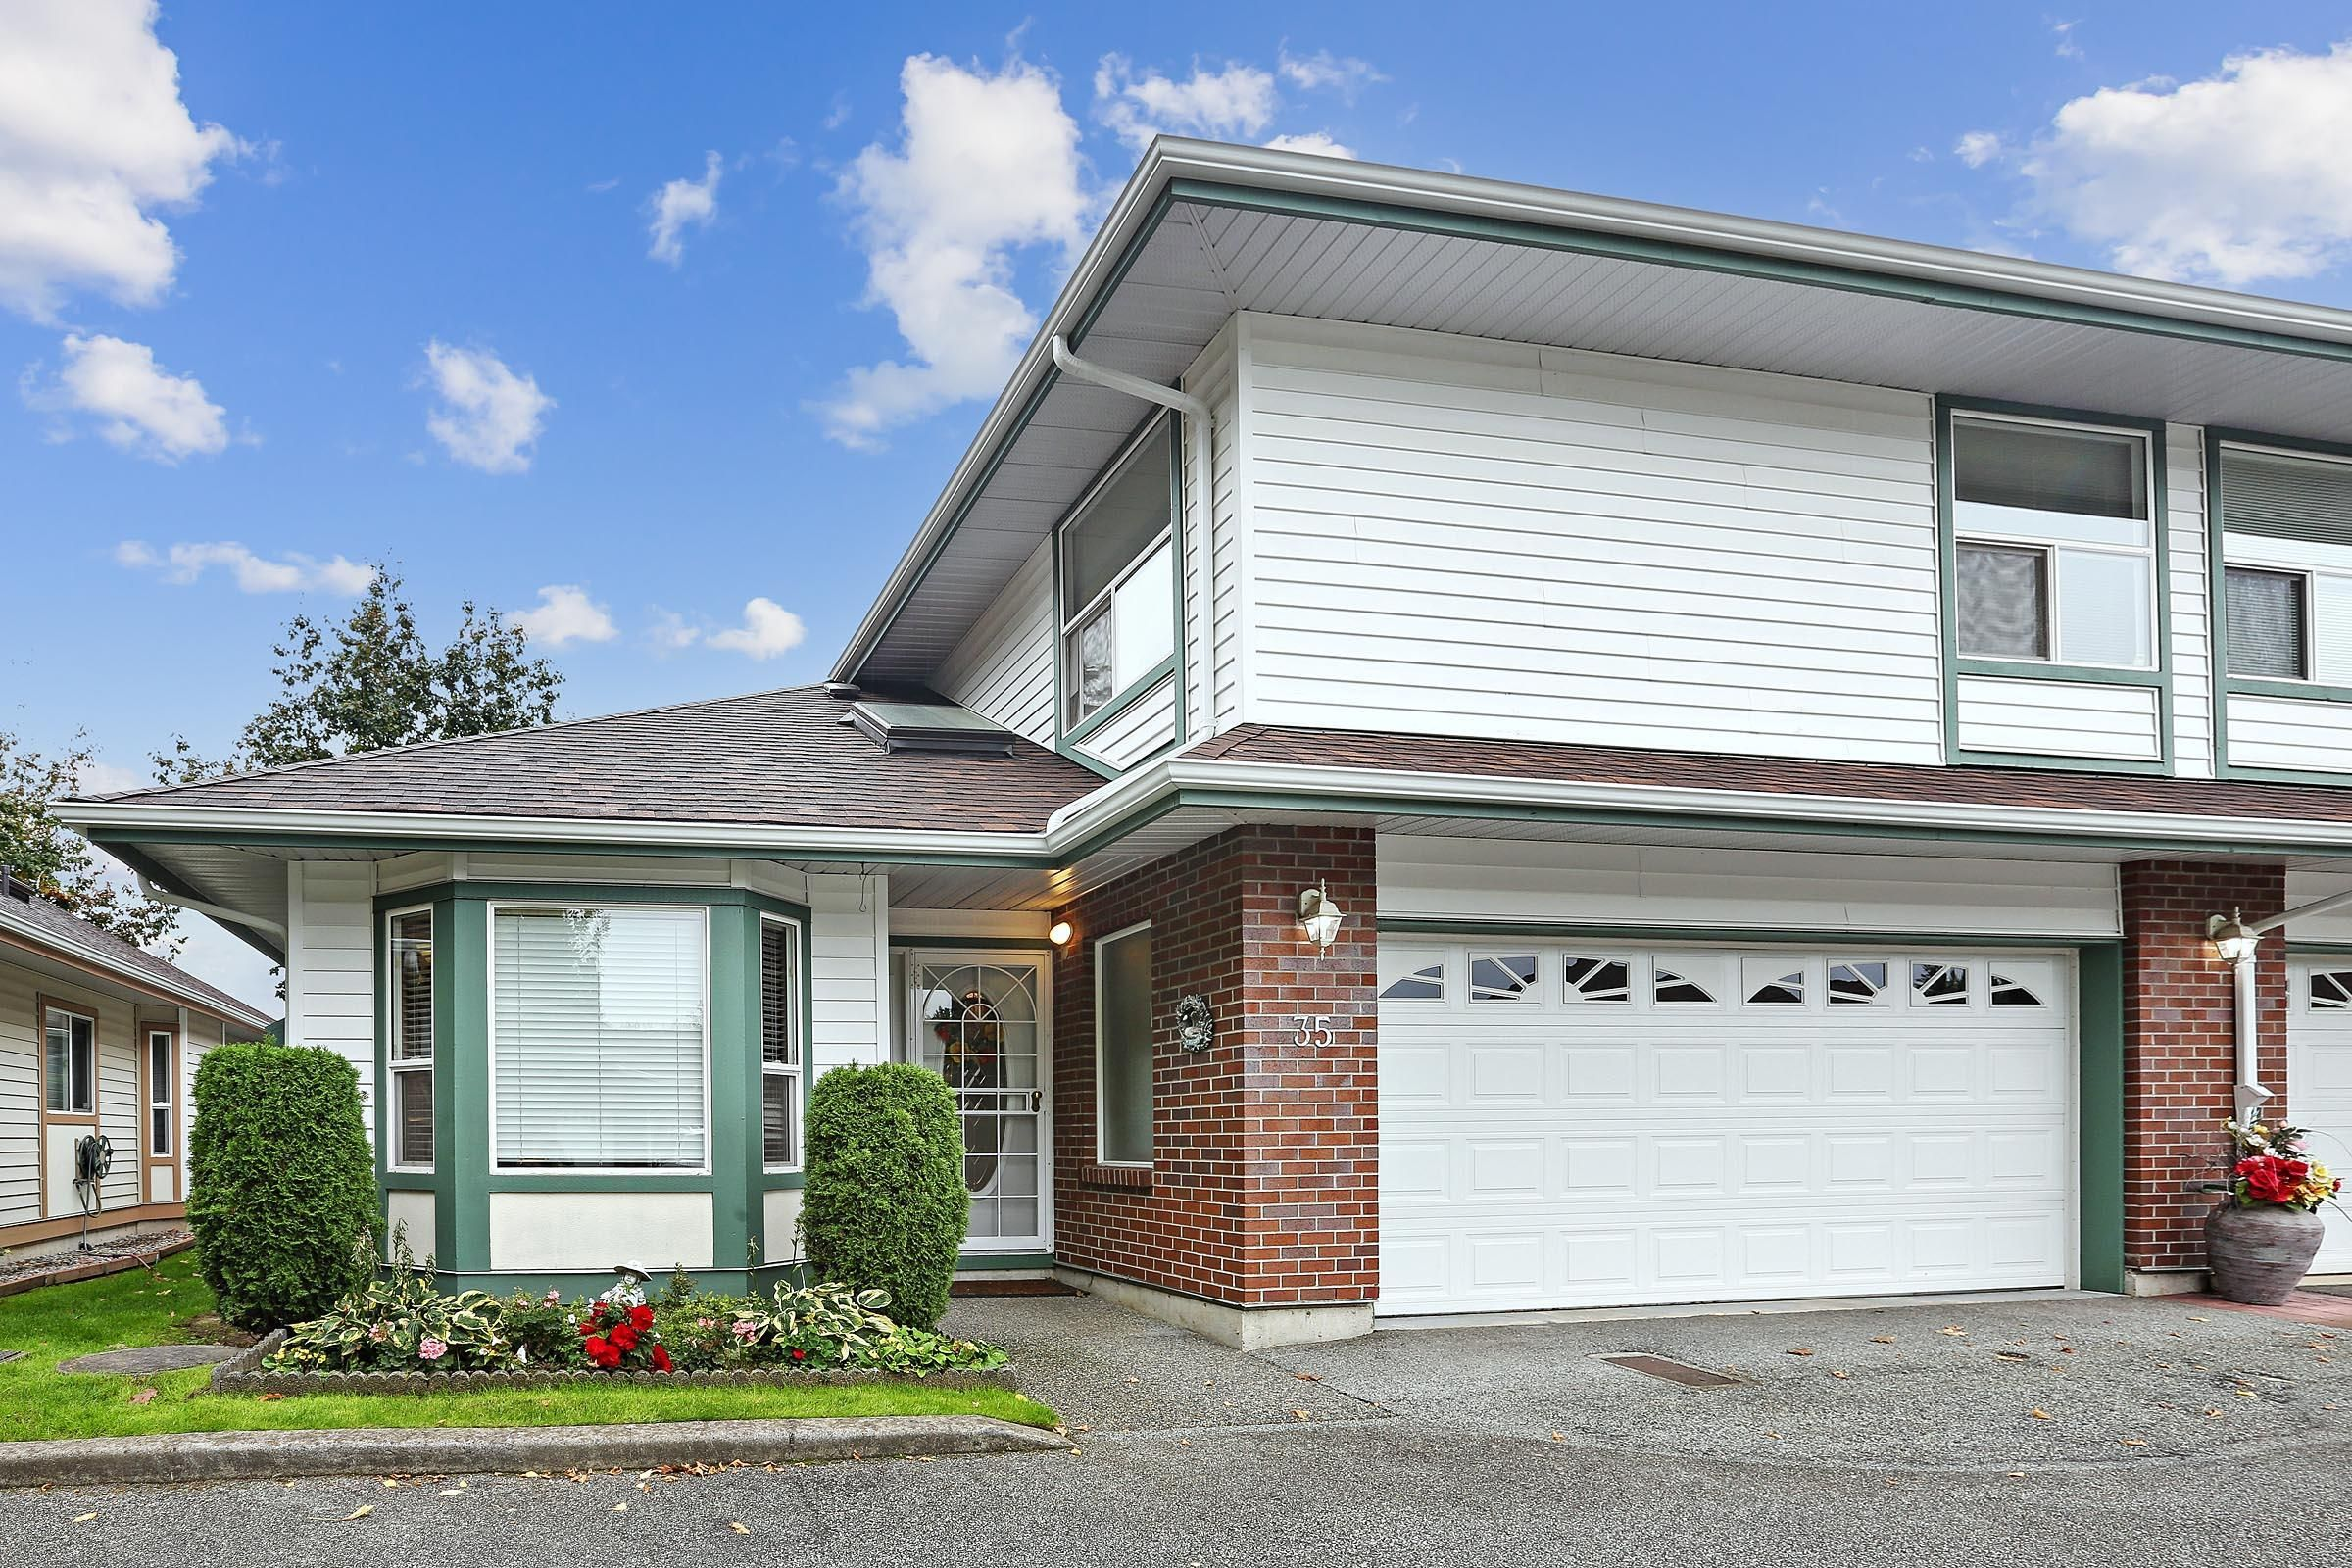 Main Photo: 35 18939 65 AVENUE in Surrey: Cloverdale BC Townhouse for sale (Cloverdale)  : MLS®# R2616293